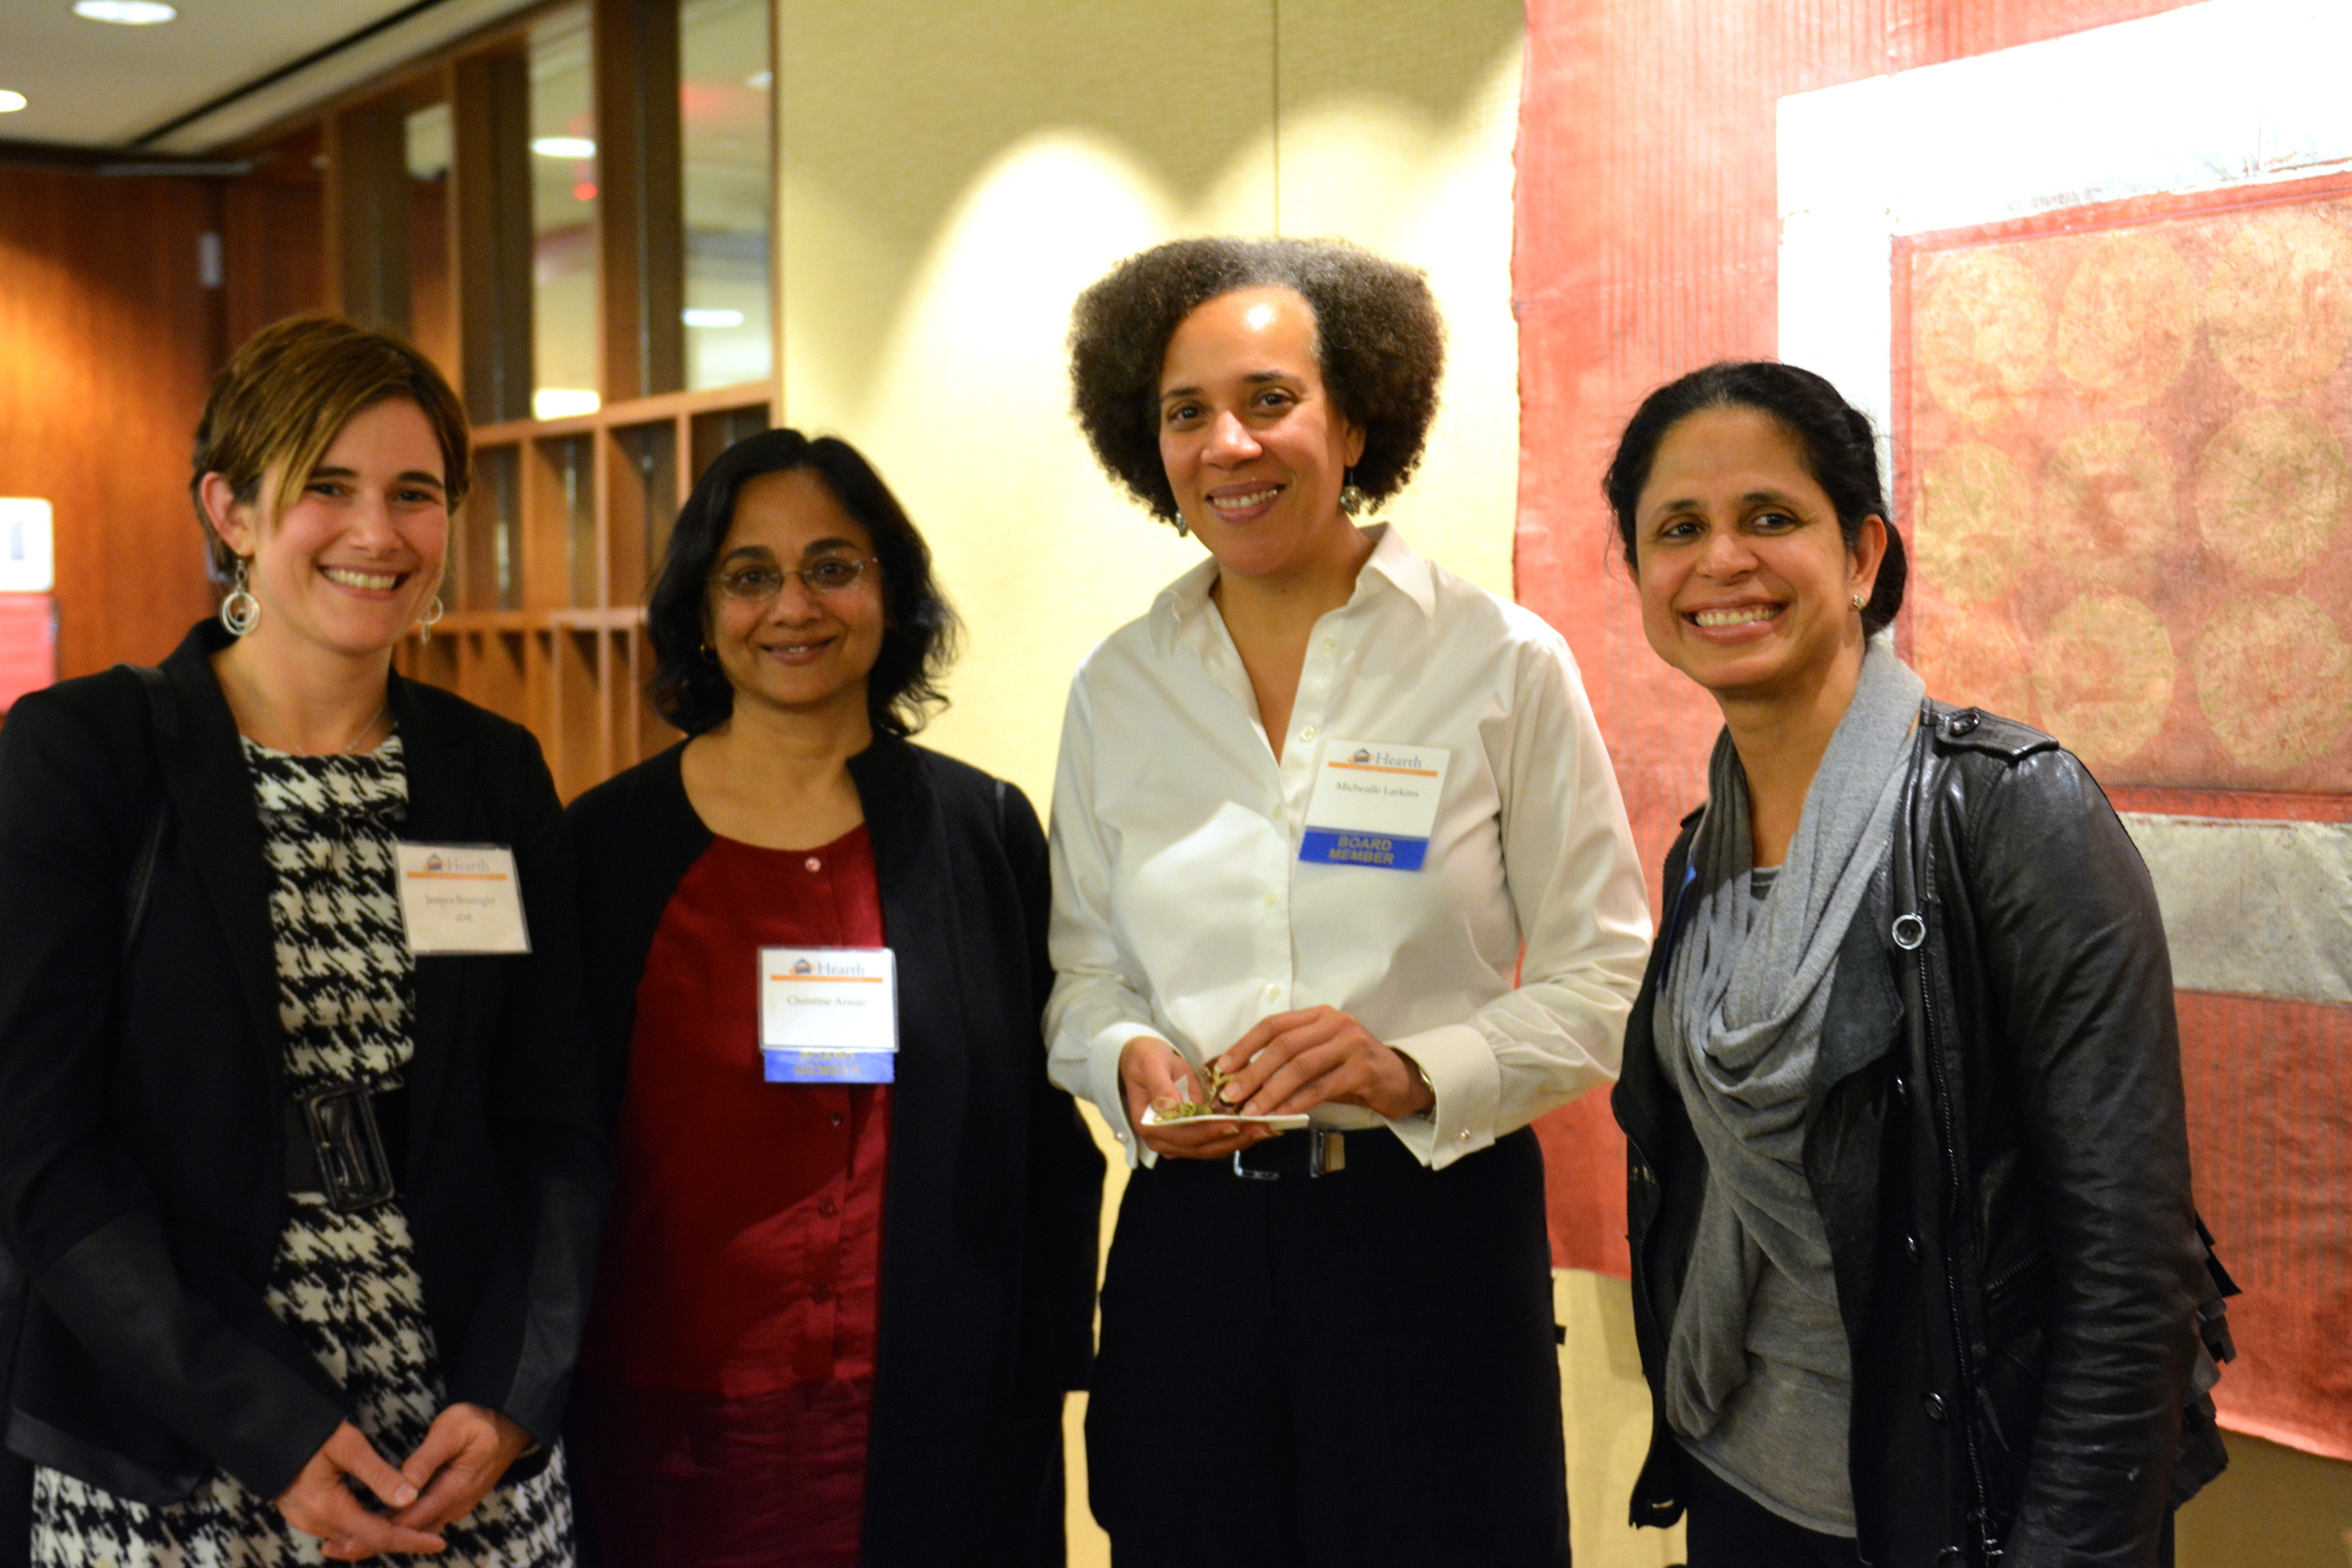 Jessica Boatright from JCHE with Hearth Board Members ChristineAraujo, Michealle Larkins, and ParamRoychoudhury.